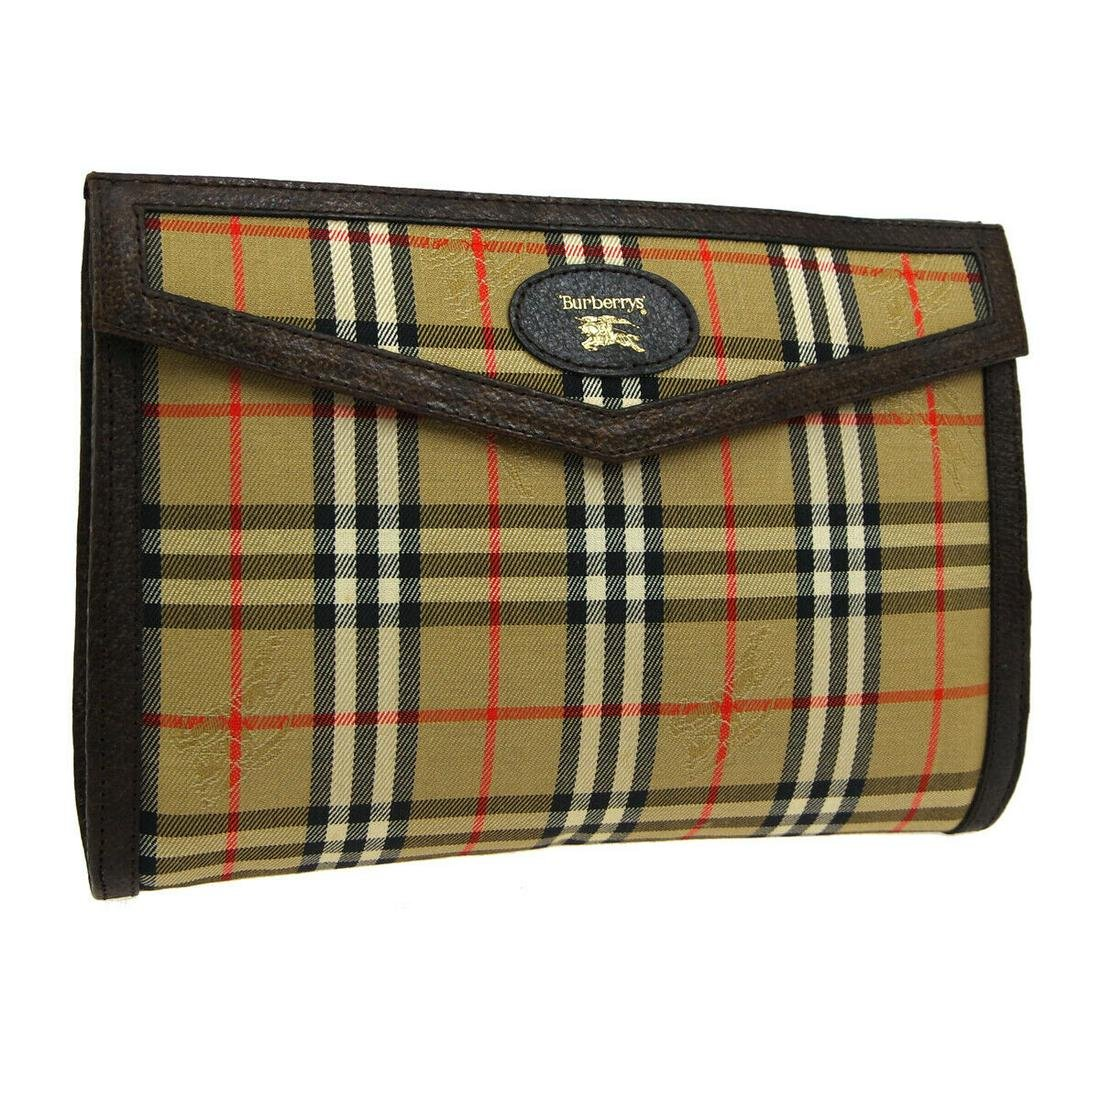 Authentic BURBERRY POUCH Canvas, Leather Clutch